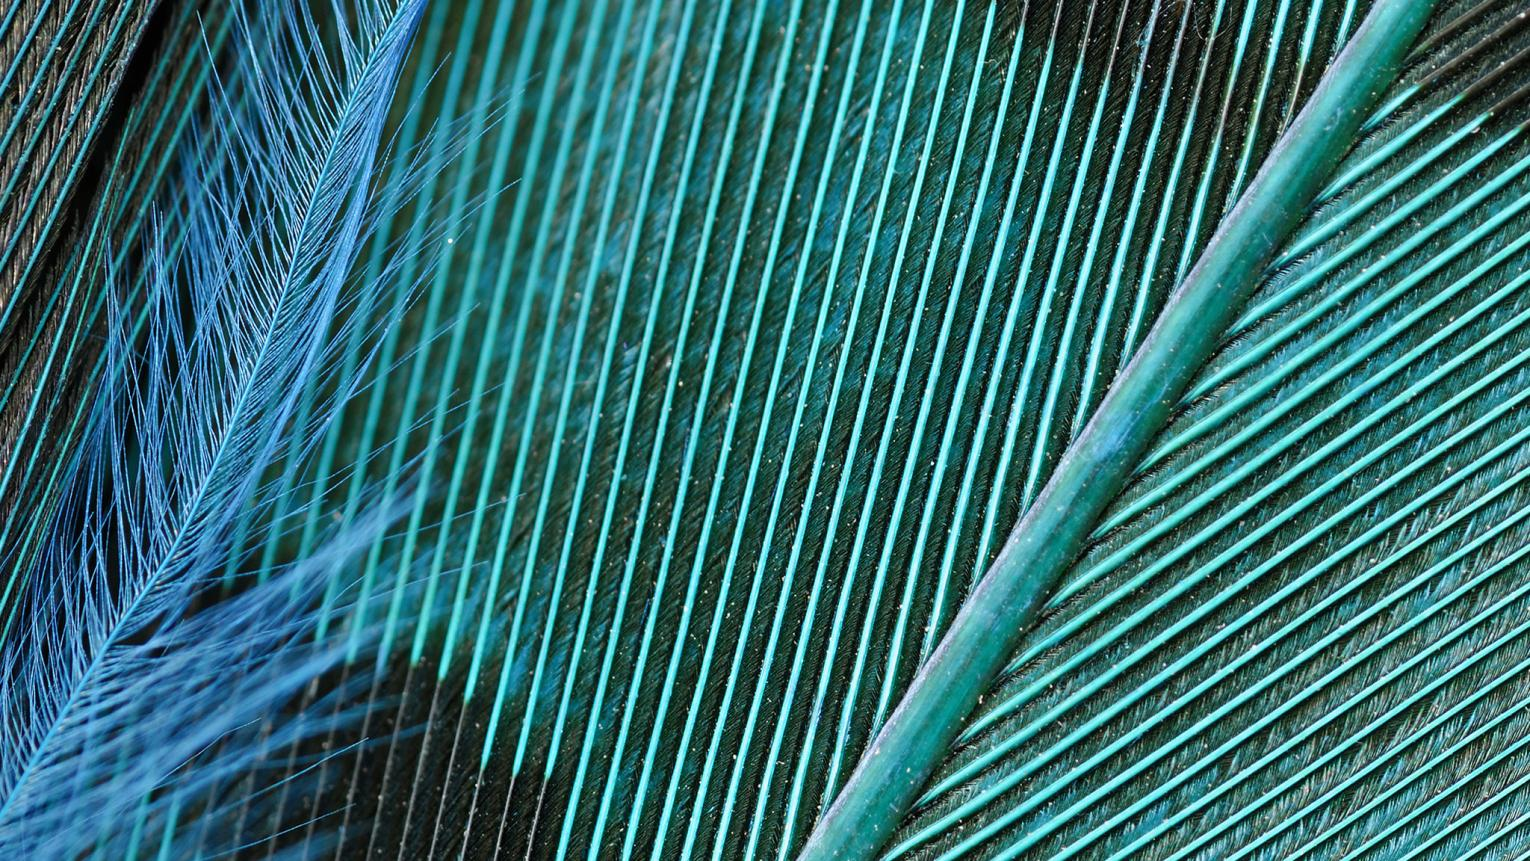 Close-up of a striking teal bird's feather.